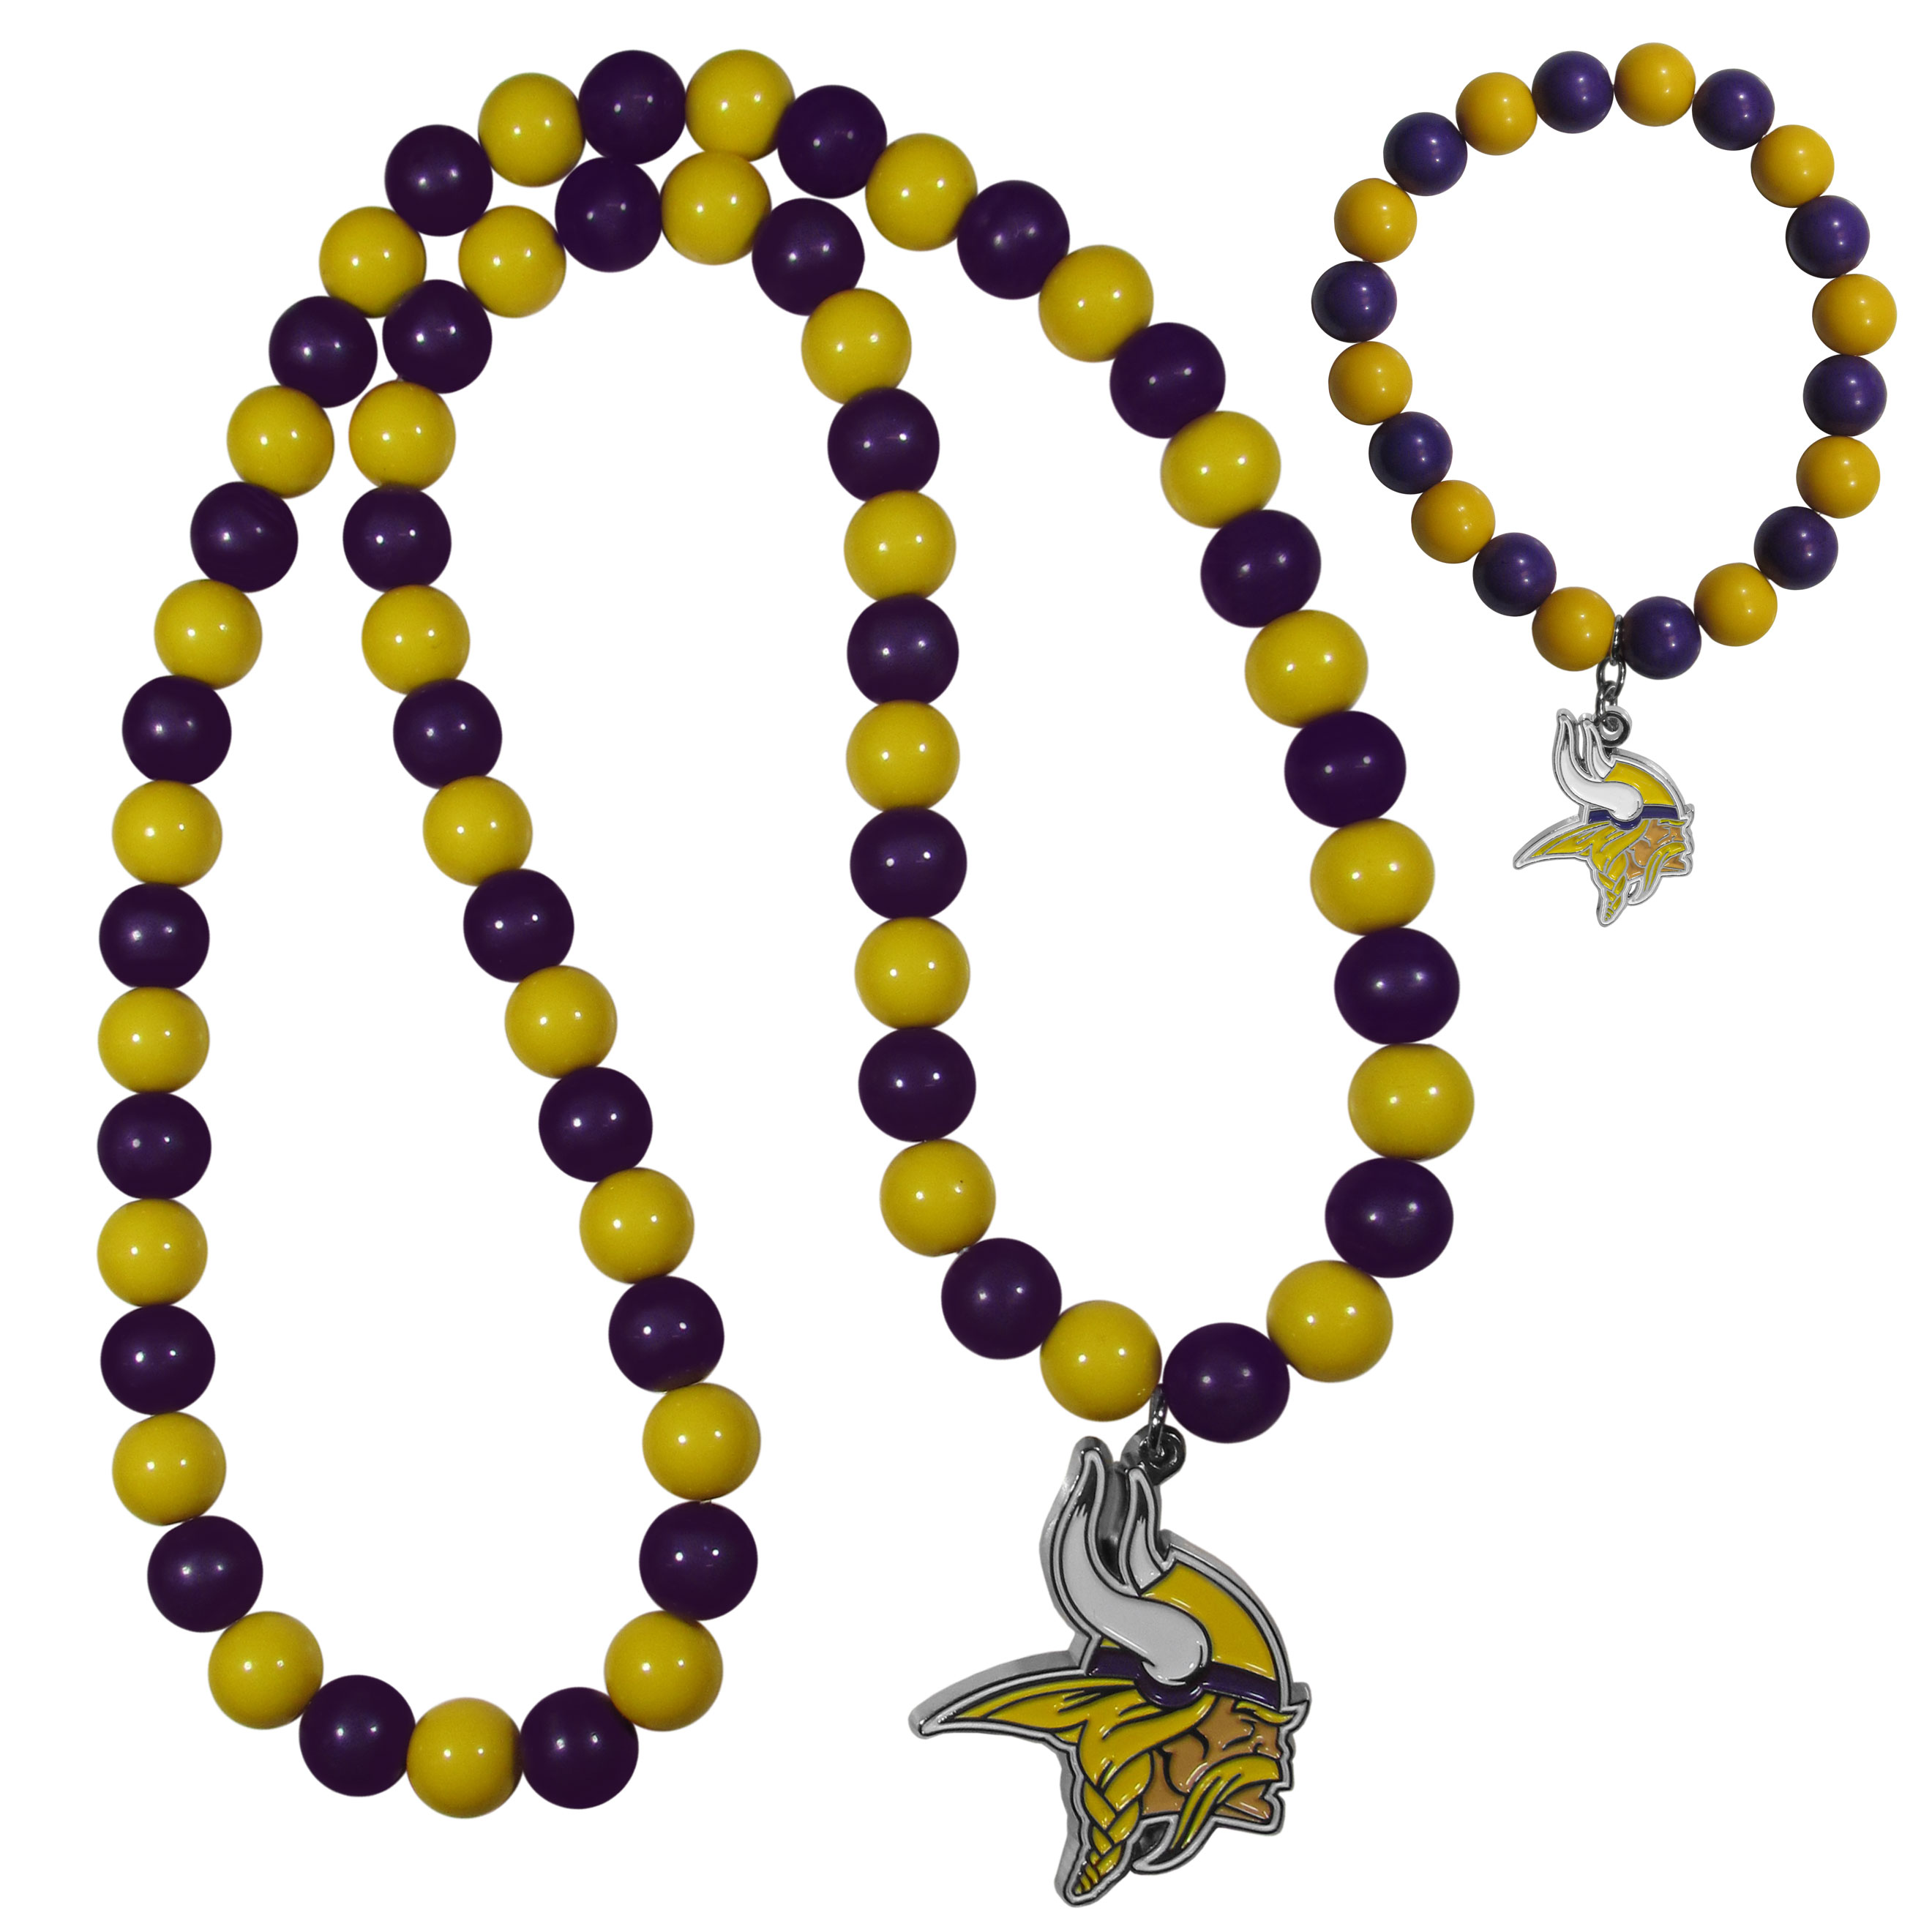 Minnesota Vikings Fan Bead Necklace and Bracelet Set - These fun and colorful Minnesota Vikings fan bead jewelry pieces are an eyecatching way to show off your team spirit. The striking necklace is a 24 inch string of alternating team colored beads with a large team pendant. The mathcing bracelet has alternating team colored beads on a stretch cord and features a matching team charm.